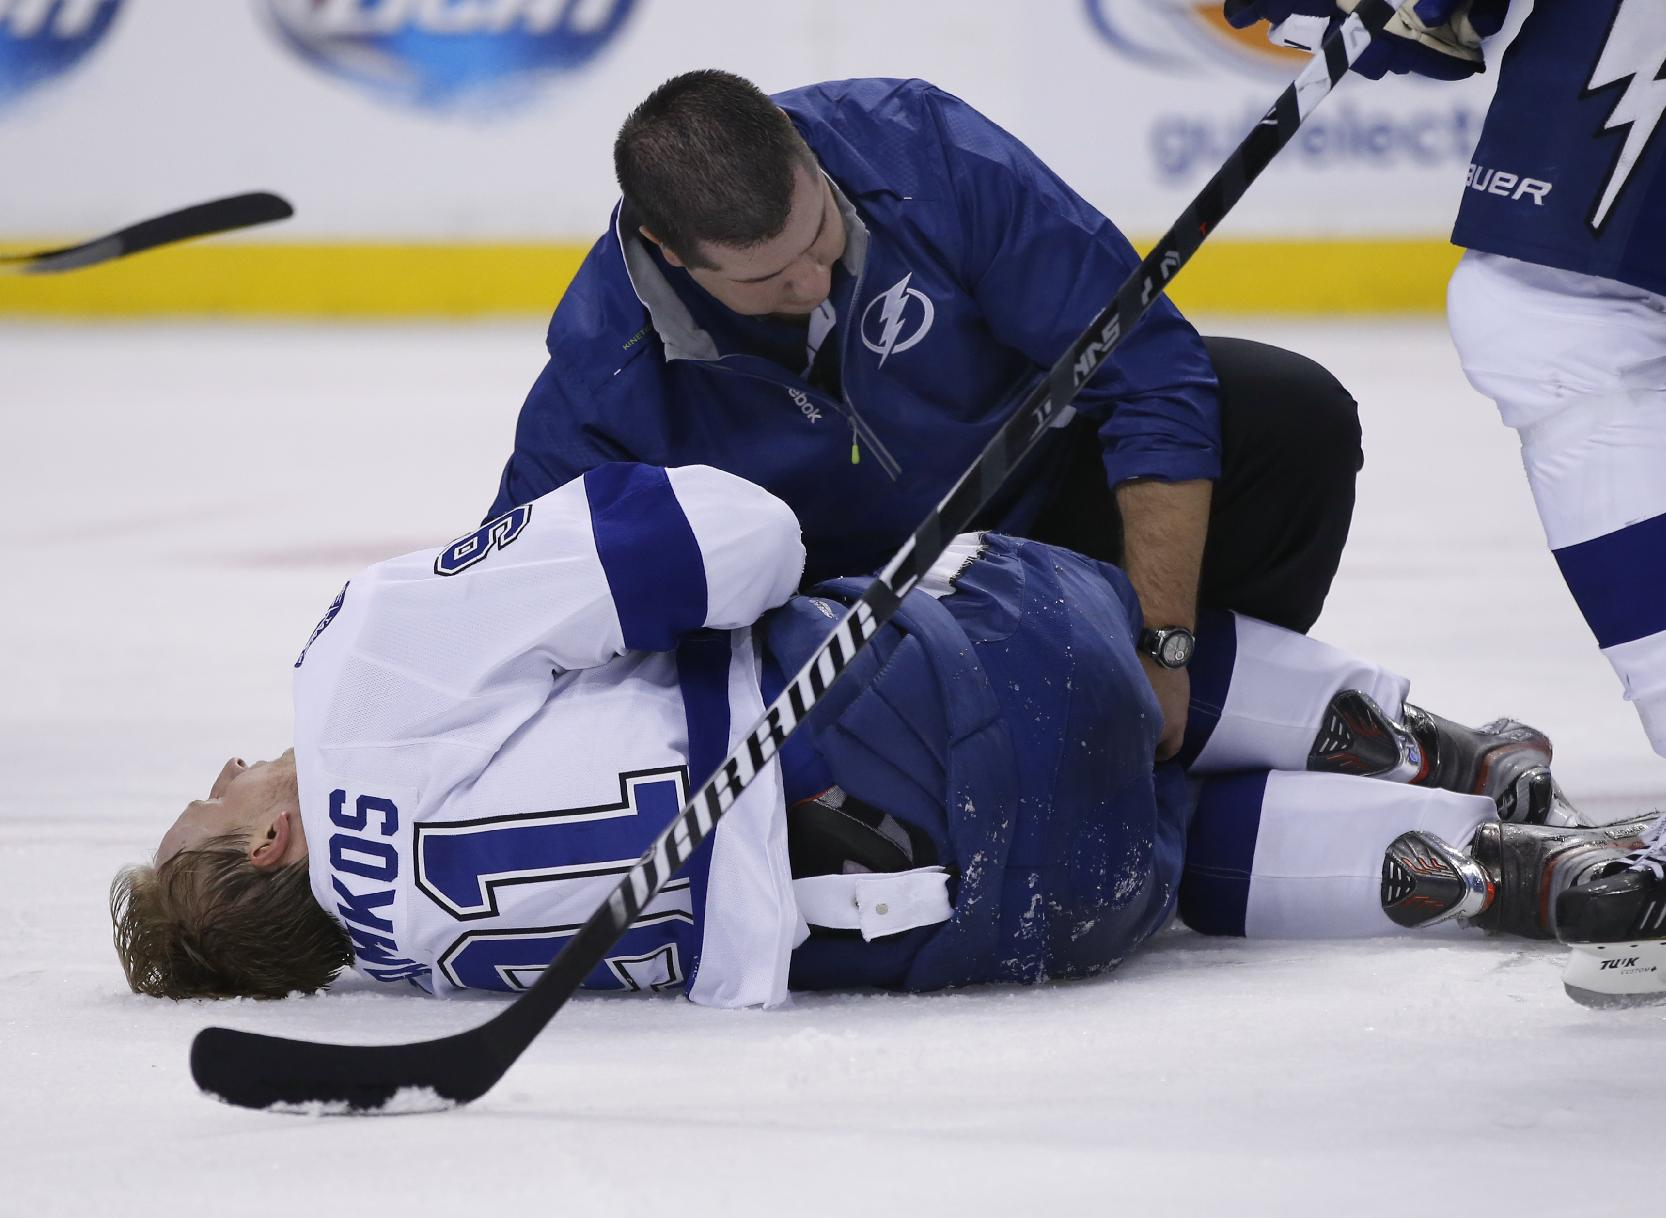 Tampa Bay Lightning center Steven Stamkos is attended to on the ice after banging into the goalpost during the second period of an NHL hockey game against the Boston Bruins in Boston Monday, Nov. 11, 2013. Stamkos was taken off the ice on a stretcher after the play